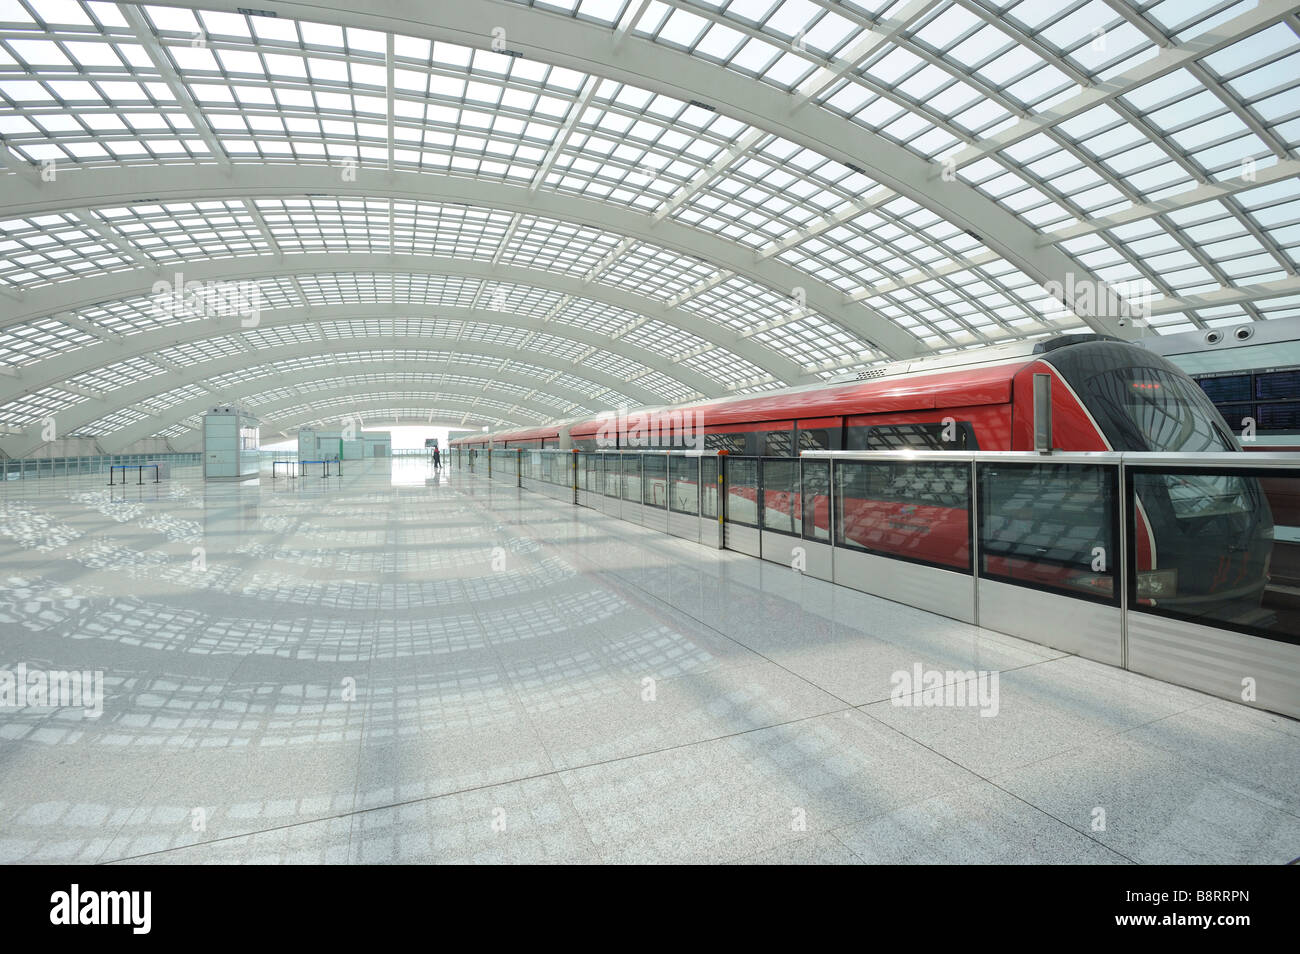 Airport Express Train Station at the Terminal 3 Beijing Capital International Airport. 07-Mar-2009 - Stock Image